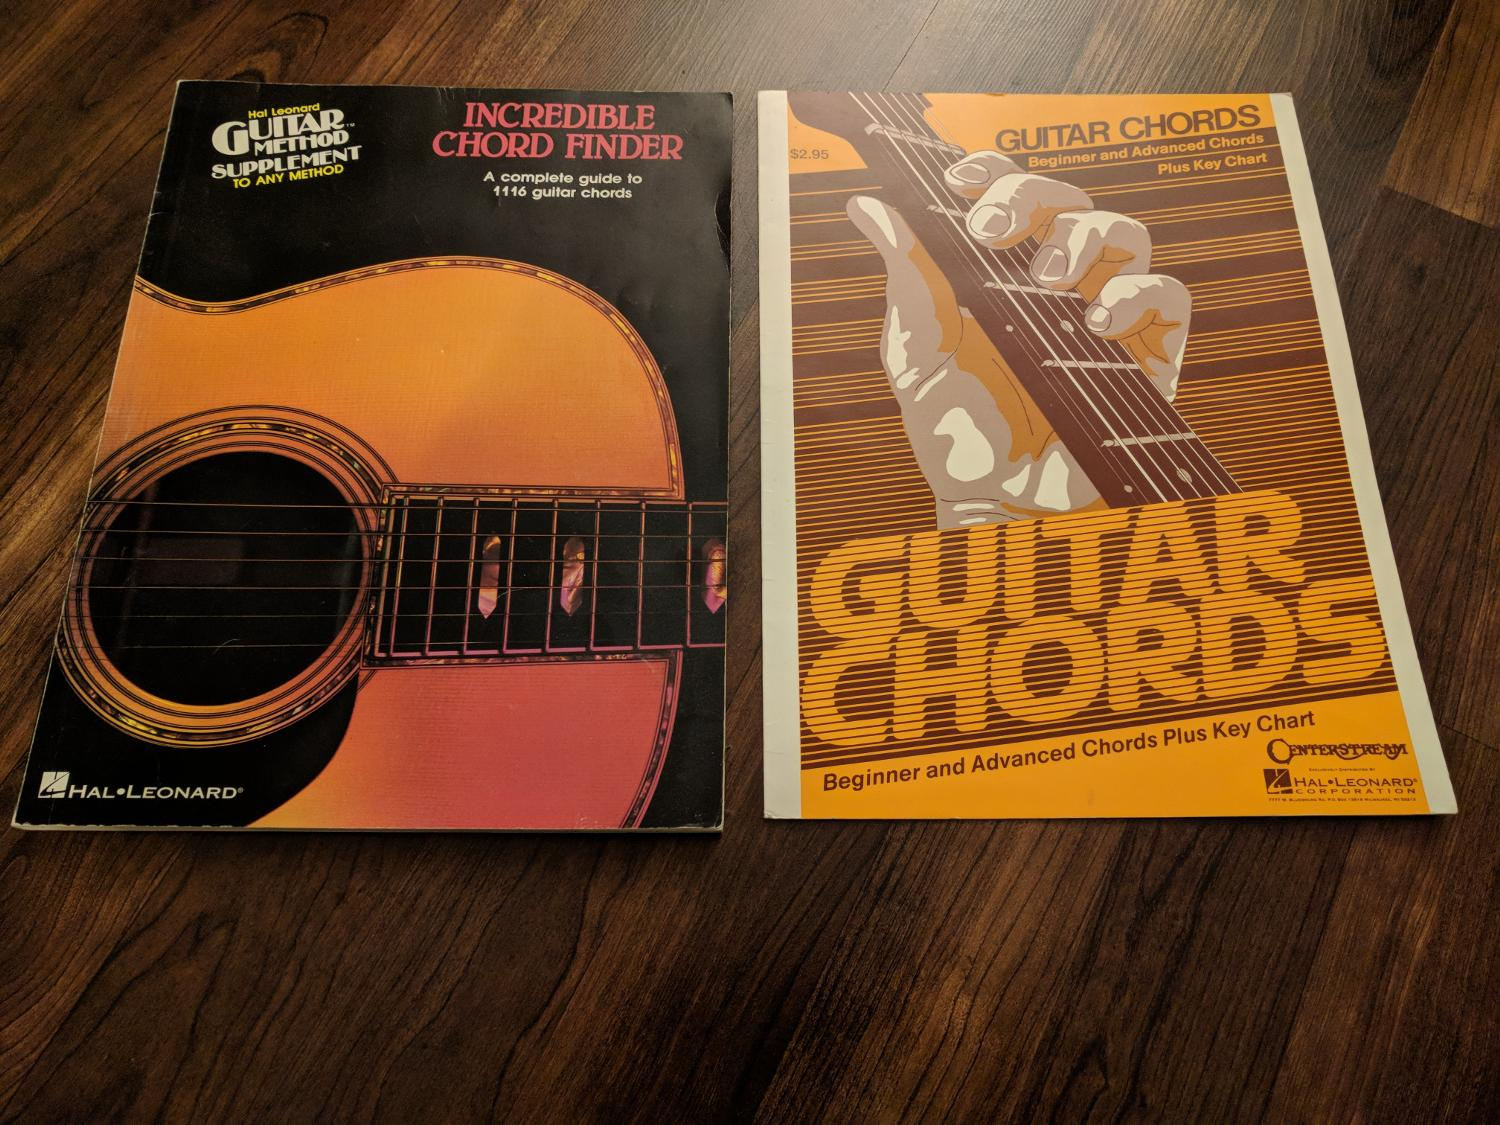 Find More 2 Guitar Chord Books For Sale At Up To 90 Off